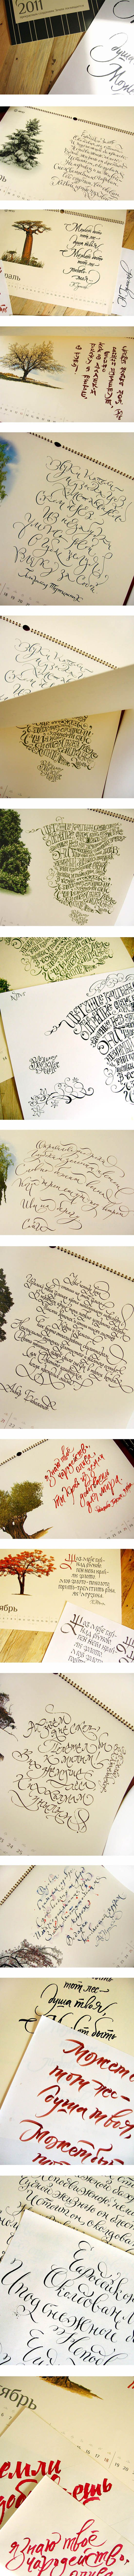 Calligraphy for the calendar. by Marina Marjina, via Behance